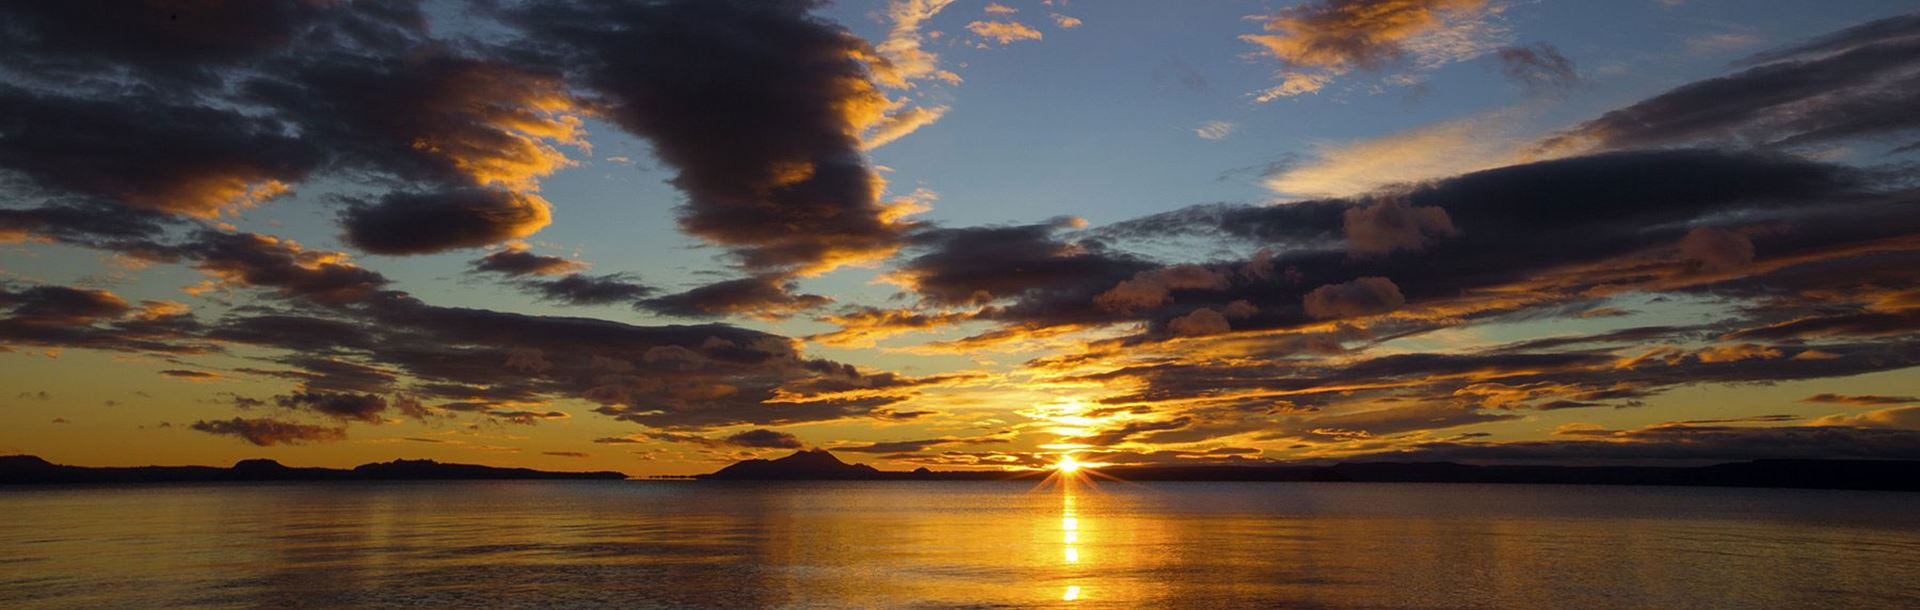 Landscape view of the setting sun over Lake Taupo, New Zealand